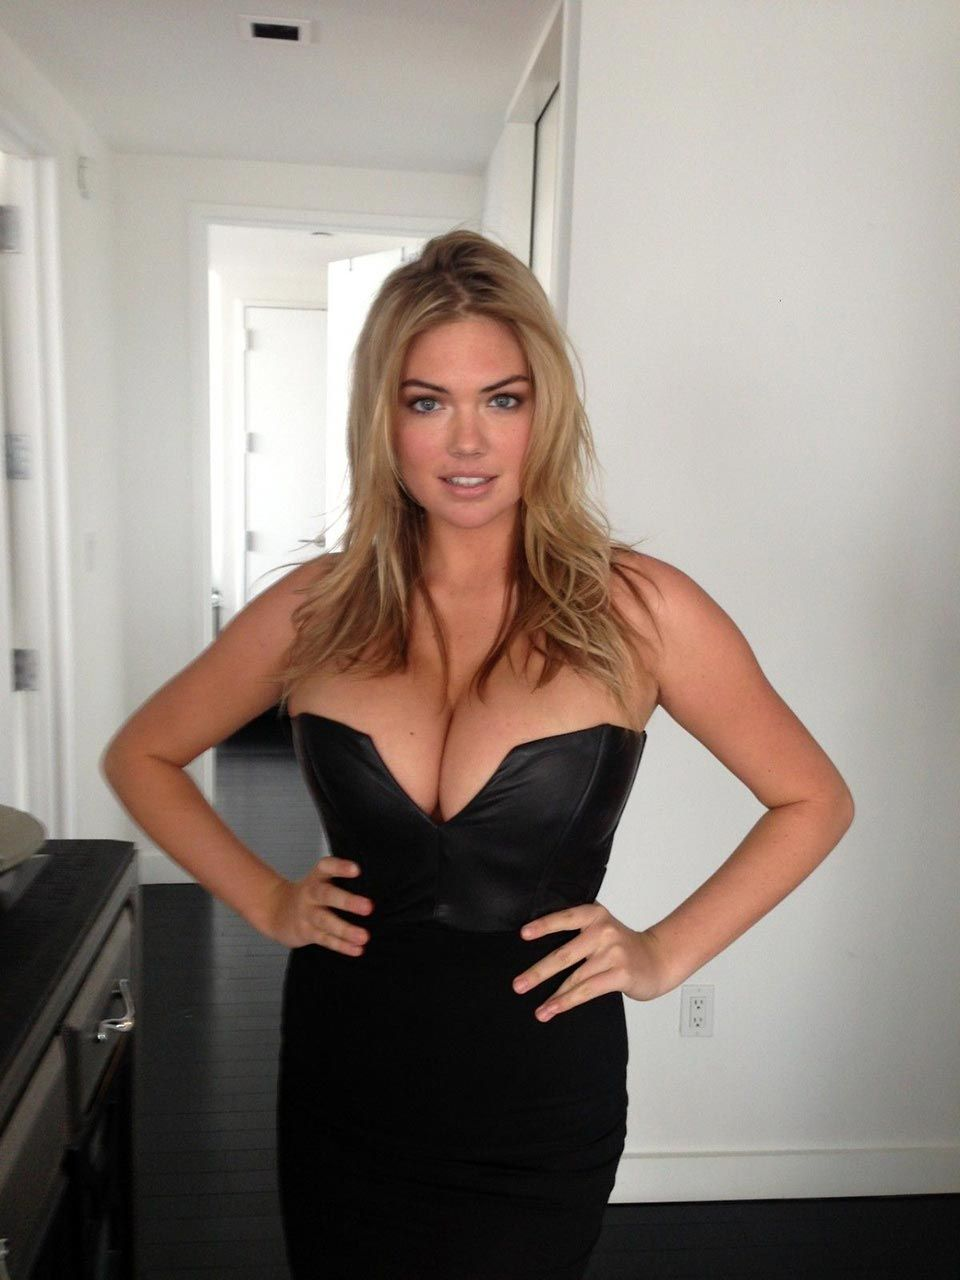 Kate Upton Nude Leaked The Fappening 0033